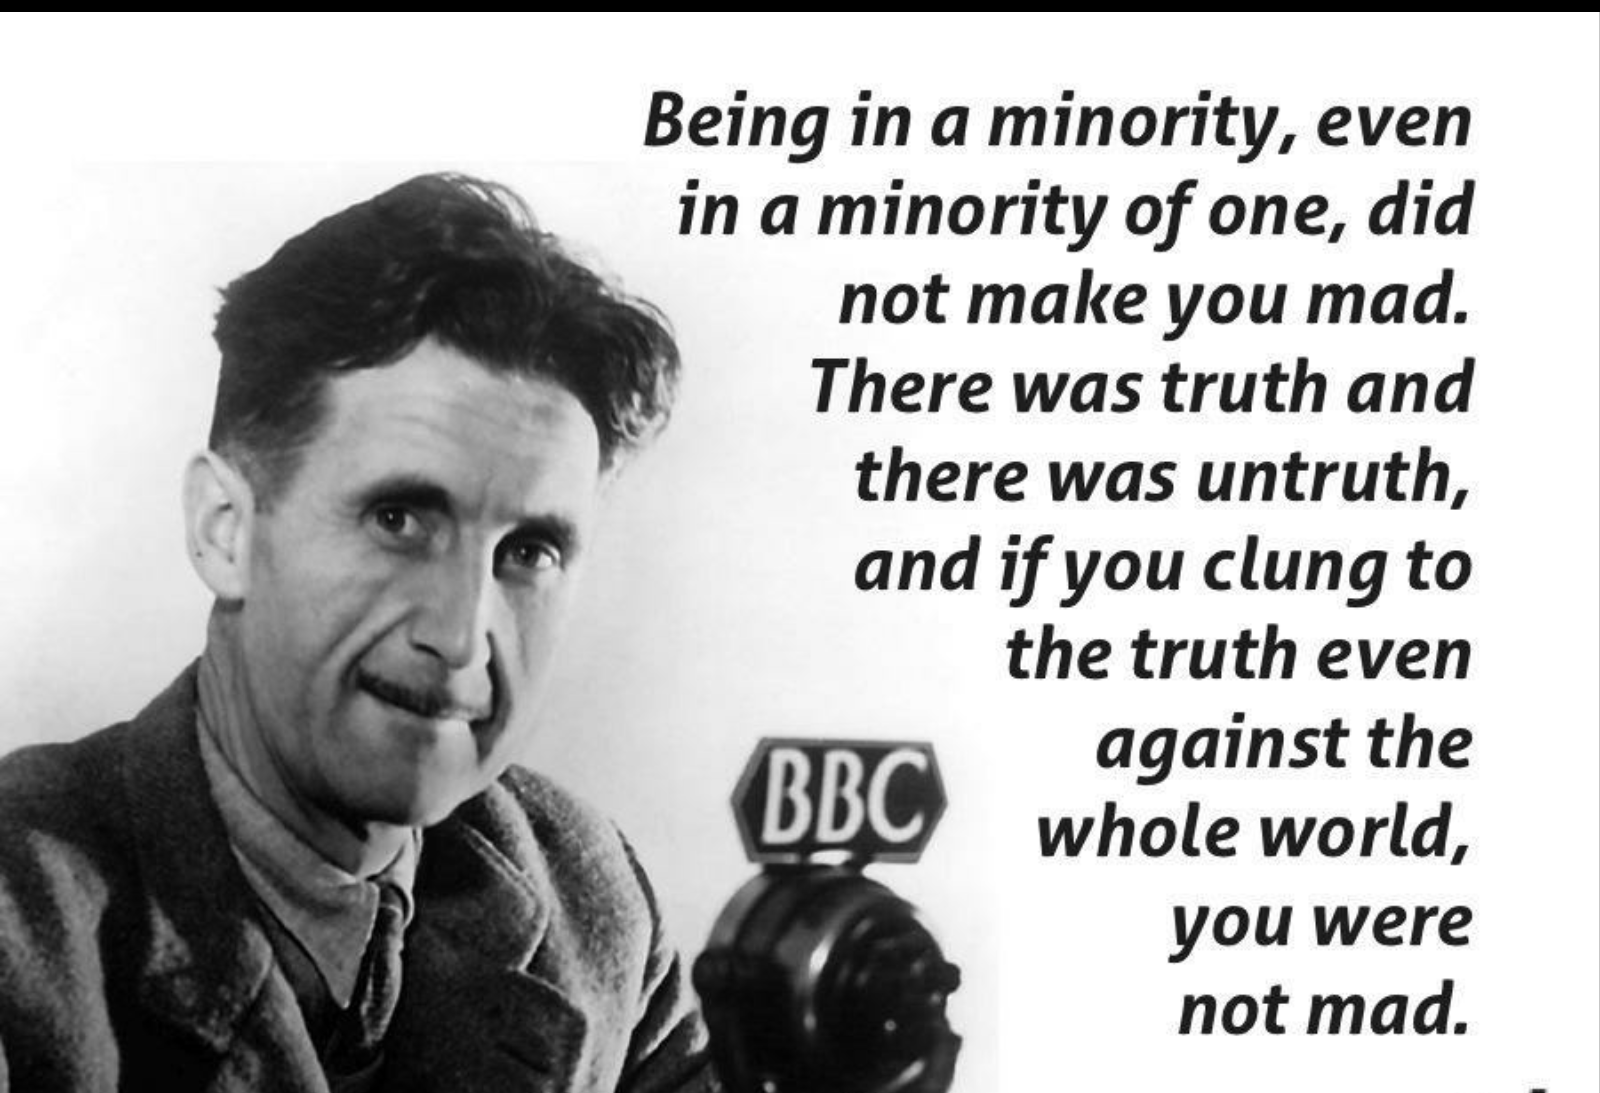 Being in a minority, even in a minority of one, did not make you mad. There was truth and there was untruth, and if you clung to the truth even against the whole world, you were not mad.George Orwell(1200×850)